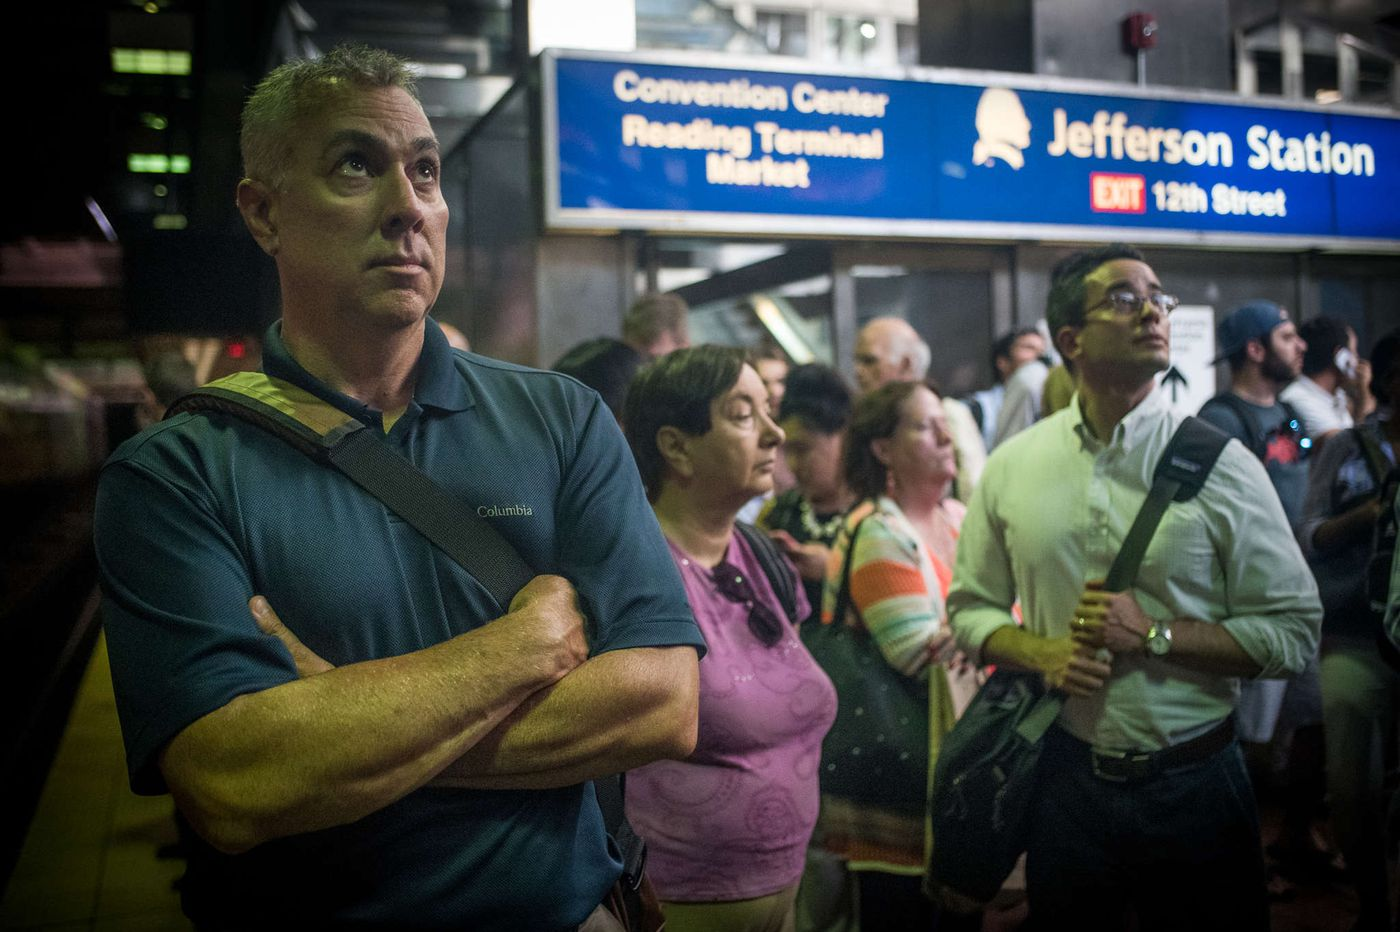 SEPTA aims to make passenger information at Regional Rail stations more consistent